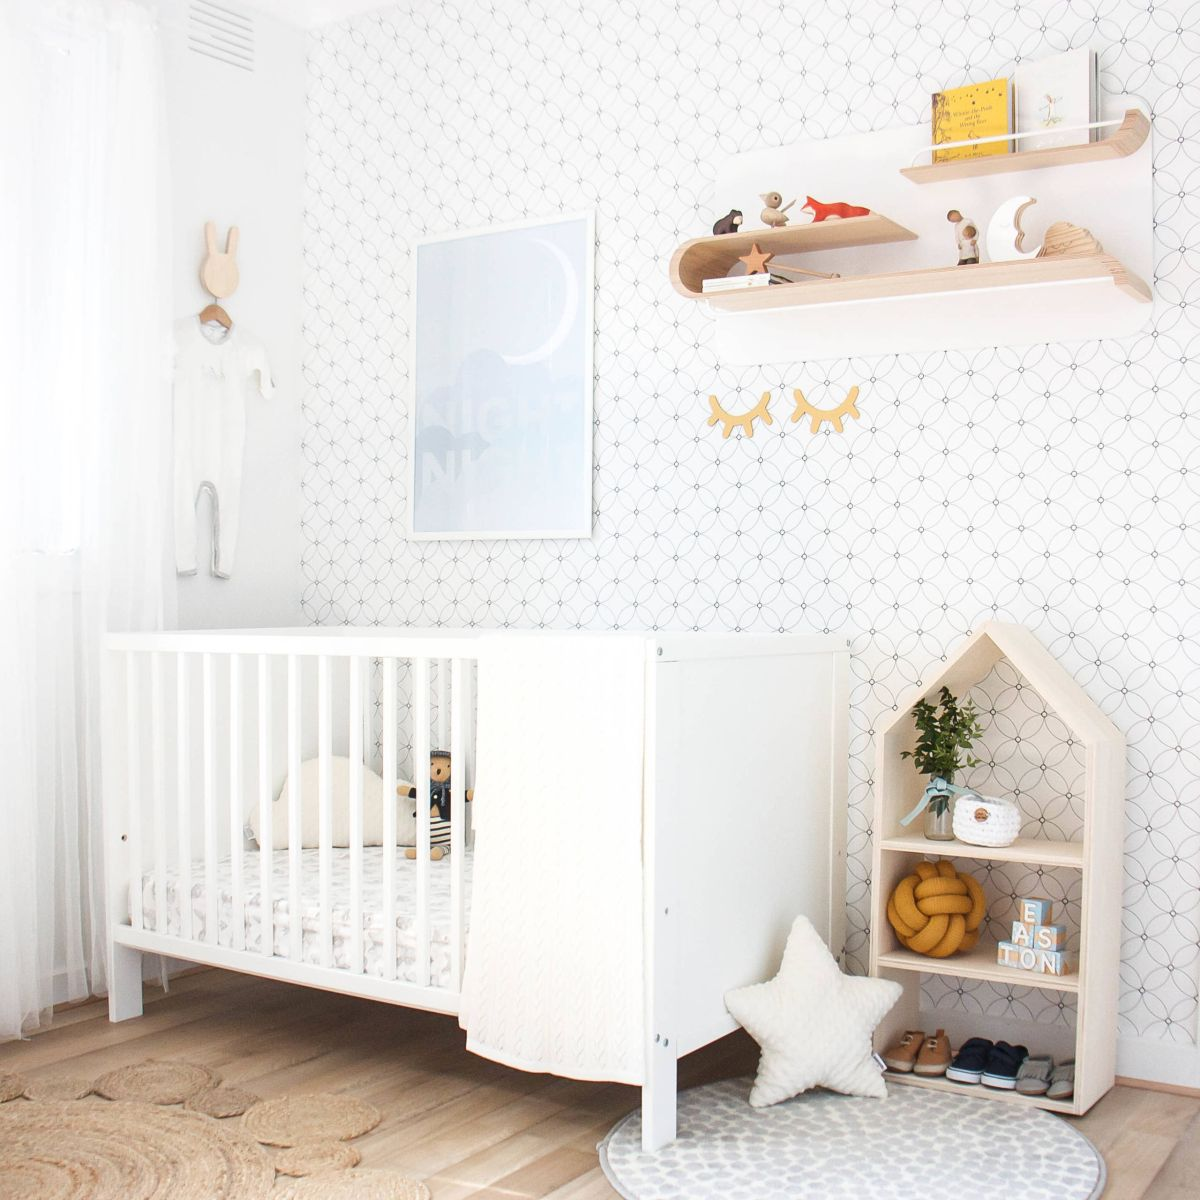 Wandtapete Kinderzimmer 20 Best Patterns For Nursery Wallpaper